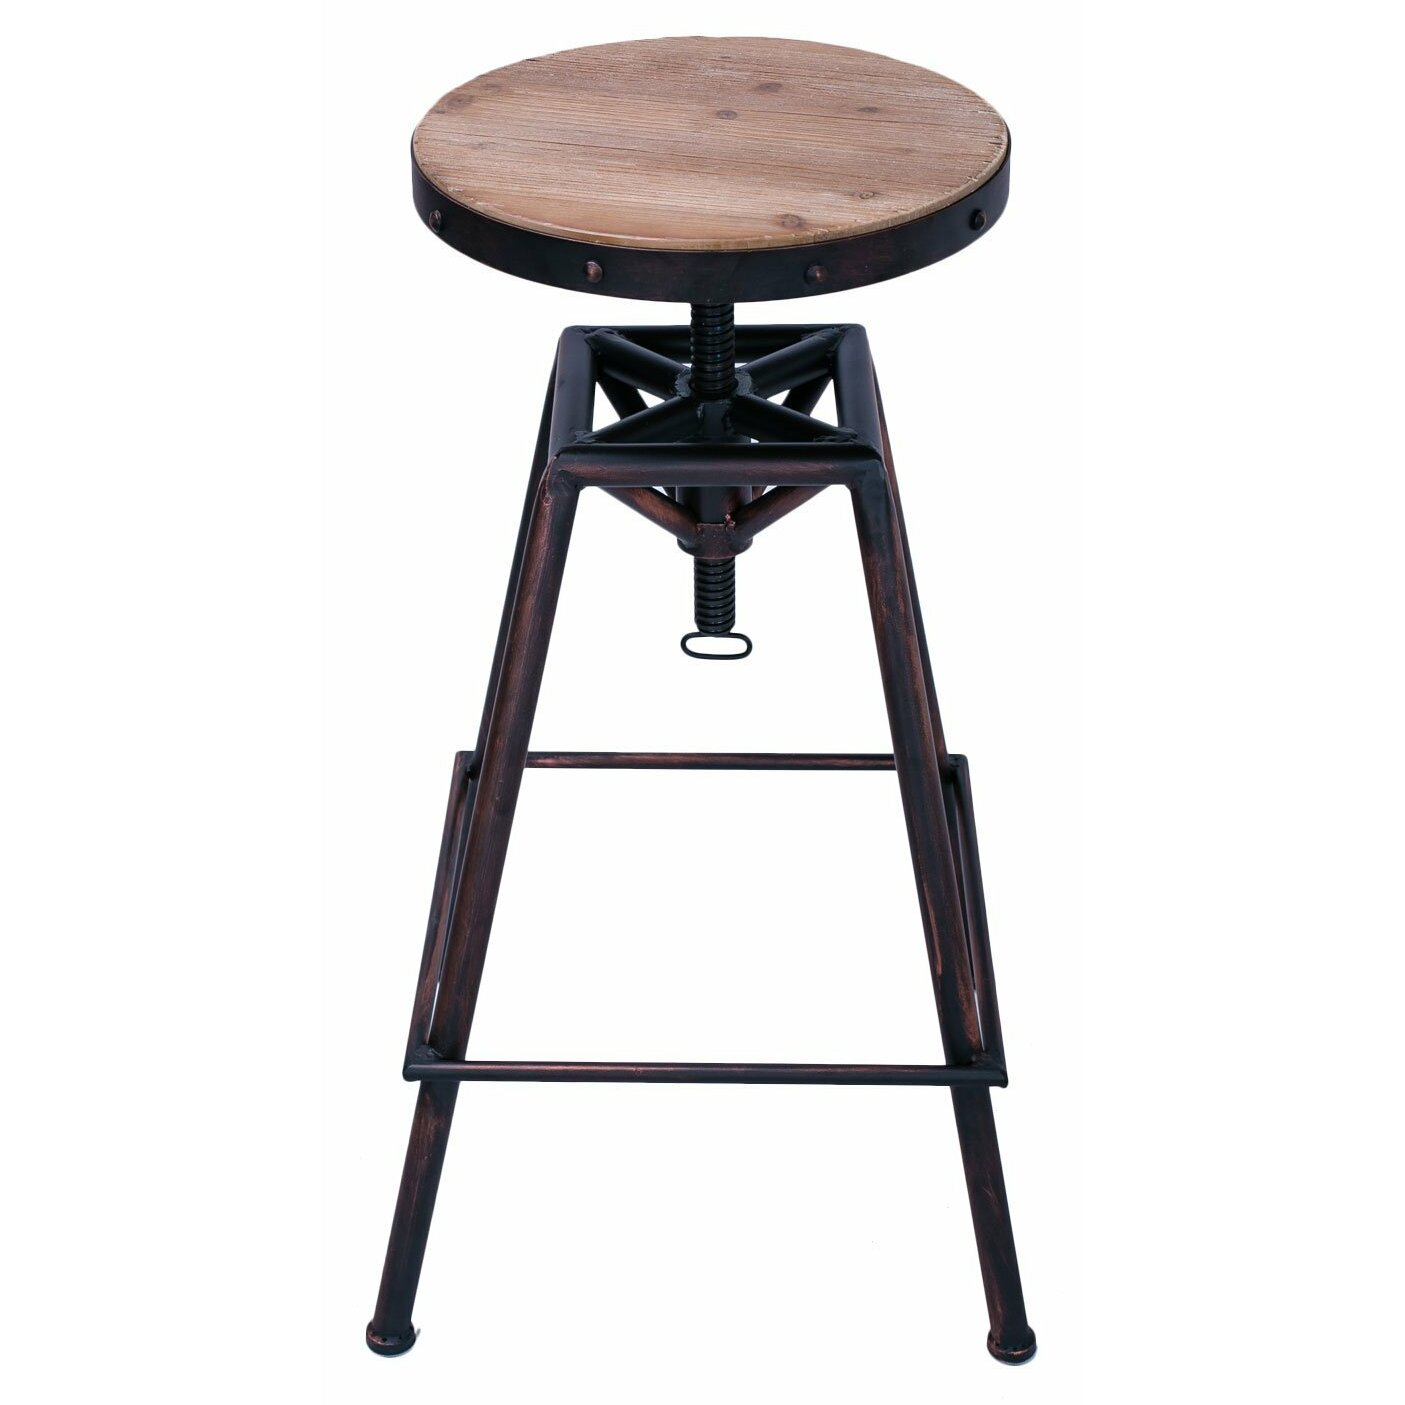 Adecotrading adjustable height swivel bar stool wayfair for Counter height swivel bar stools